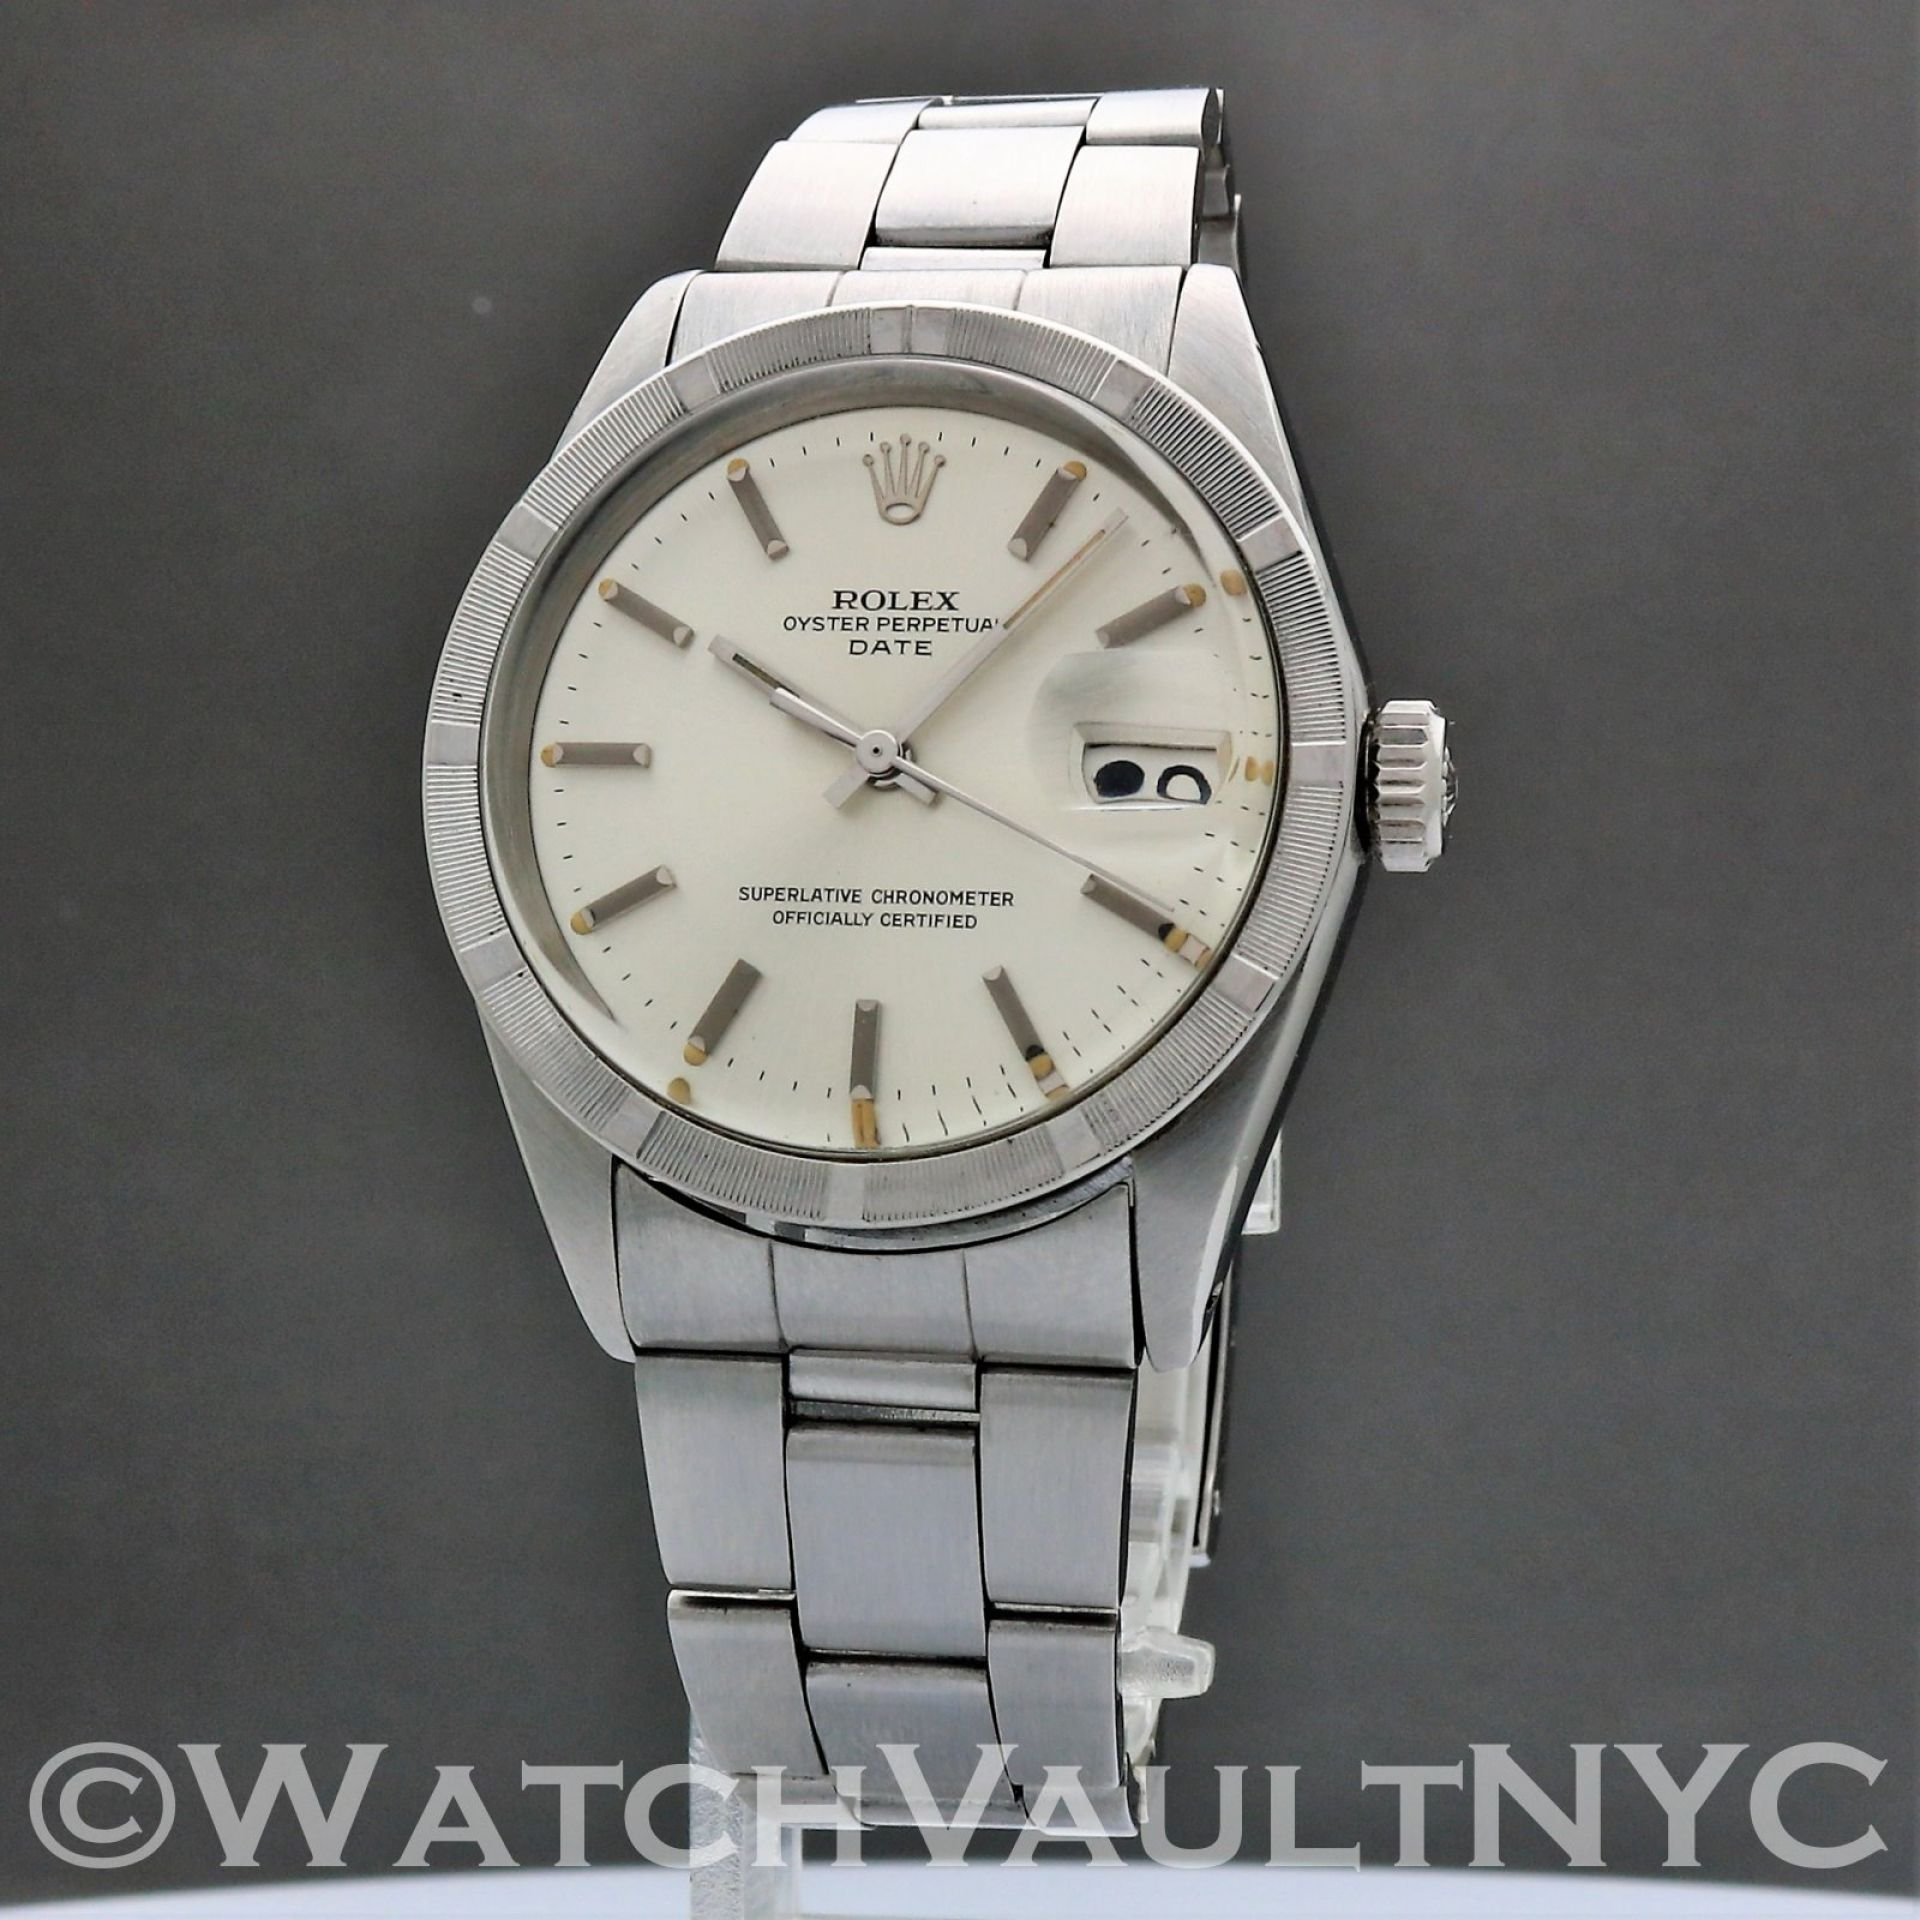 Rolex Oyster Perpetual Date 1501 1971 Vintage 34mm Auto RL501